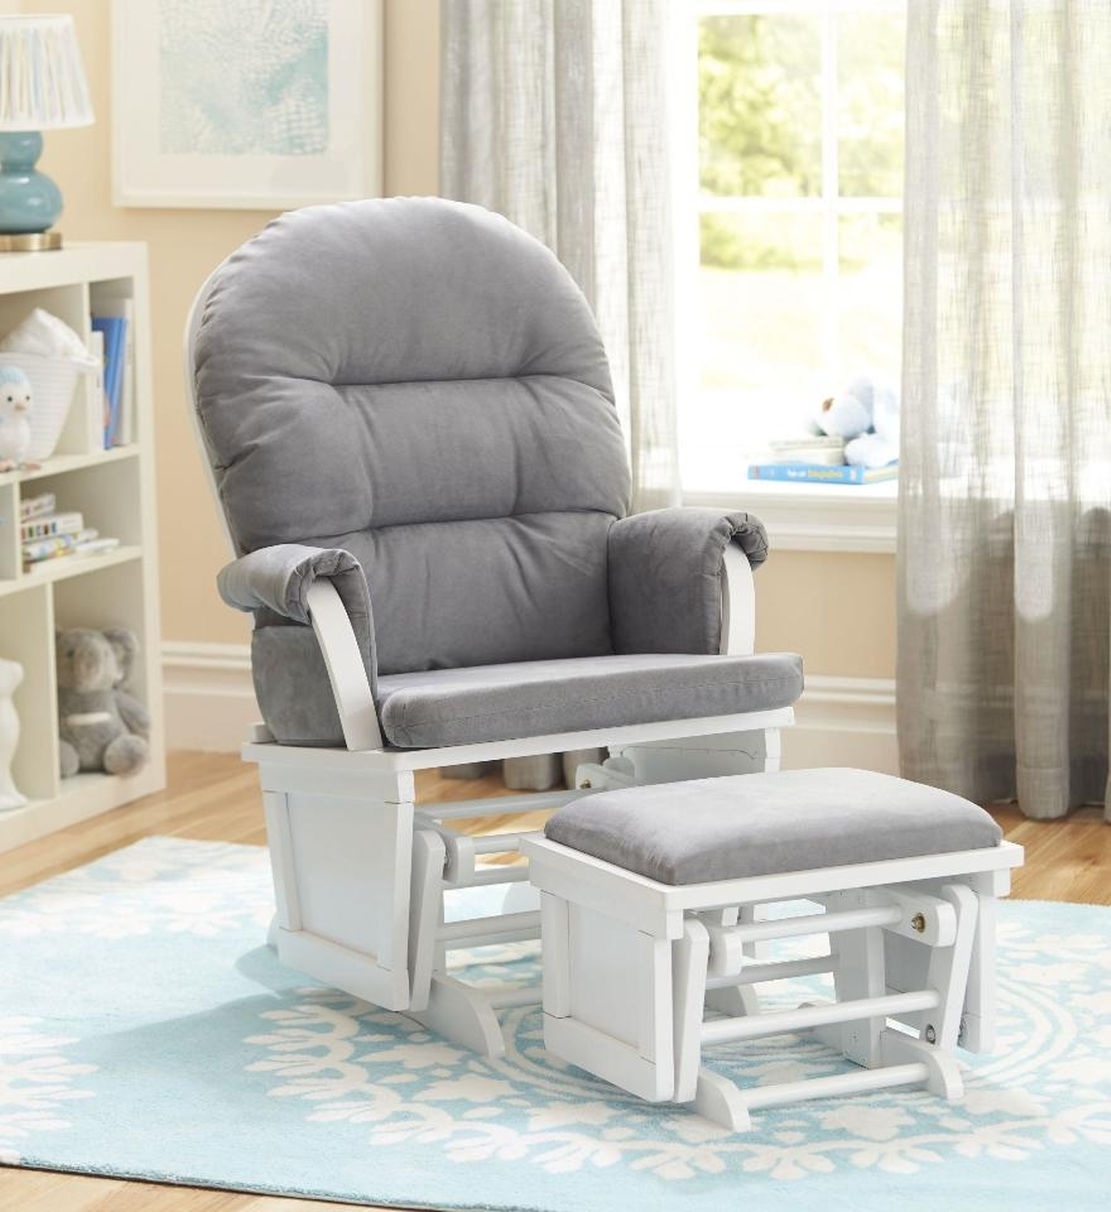 Inexpensive Nursery Rocking Chair Nursery Rocking Chair To Help Inside Rocking Chairs For Nursery (#7 of 15)